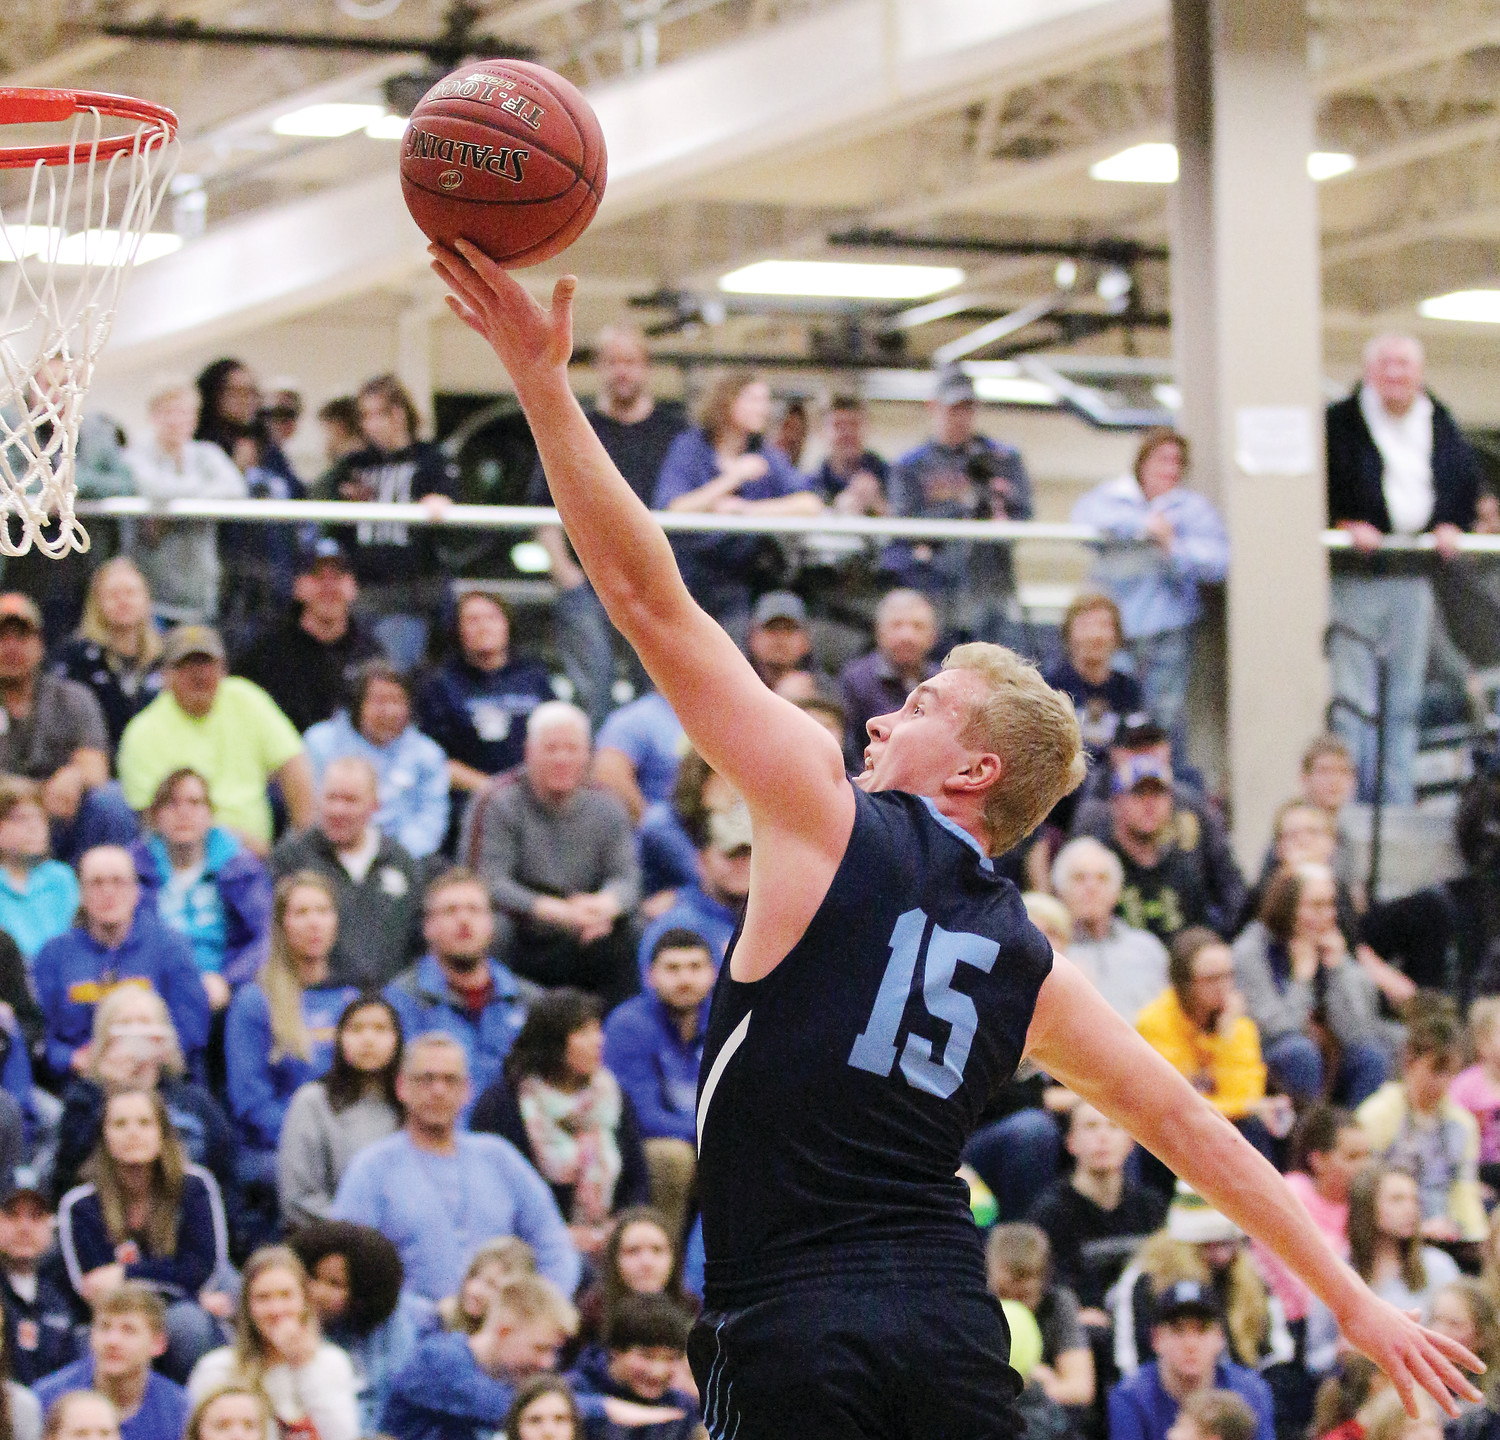 Grizzlies senior Tate Olson goes in for a layup during last Friday's game against Deer River. Olson scored his 1,000th point during the match.